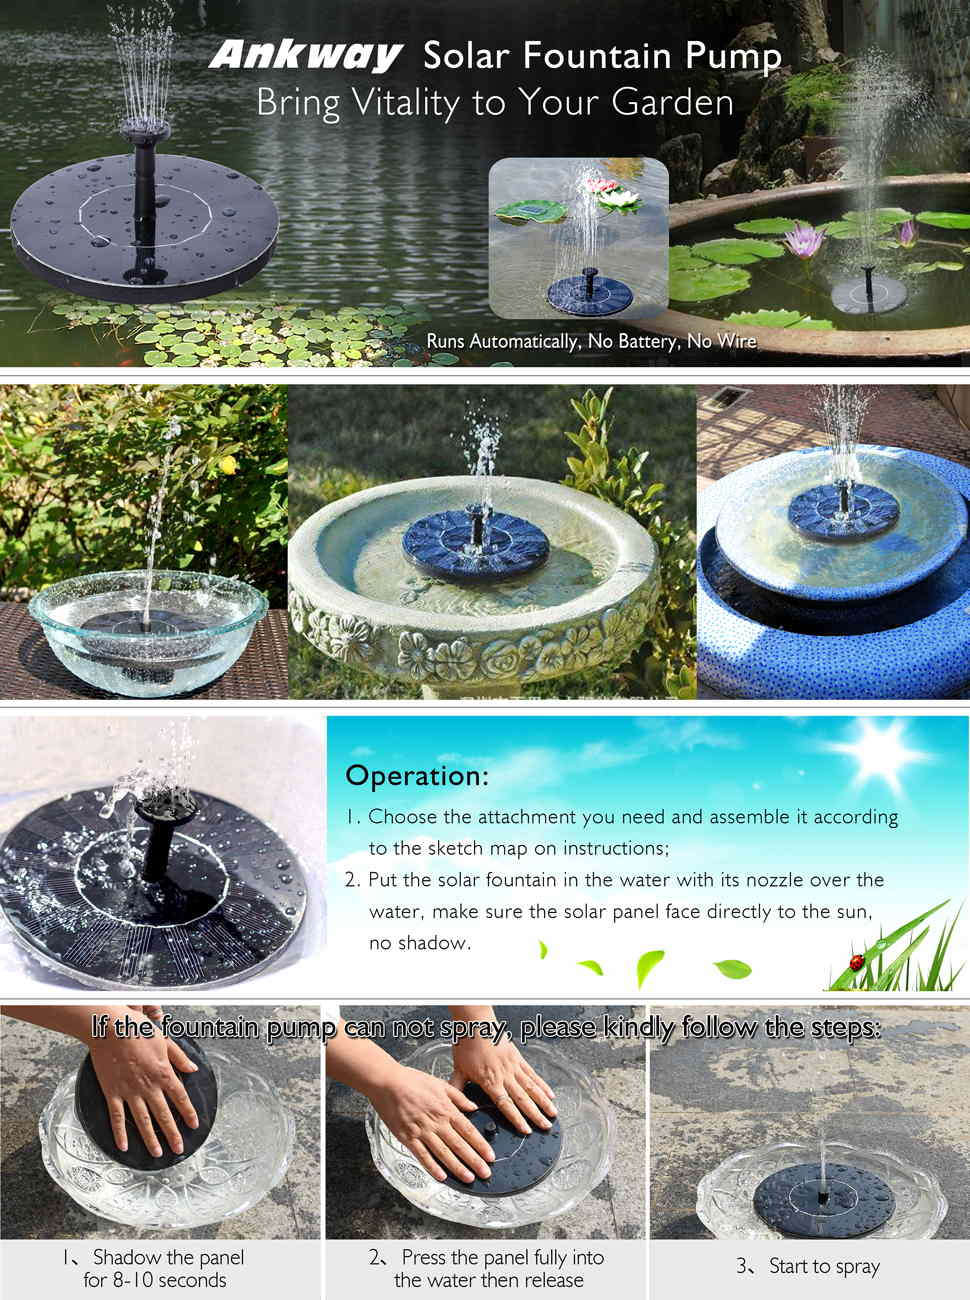 External water fountain pump - Now It S Getting Warmer And Warmer Ankway Fountain Pump Is A Great Choose To Attract The Birds To Bring Your Garden Vitality